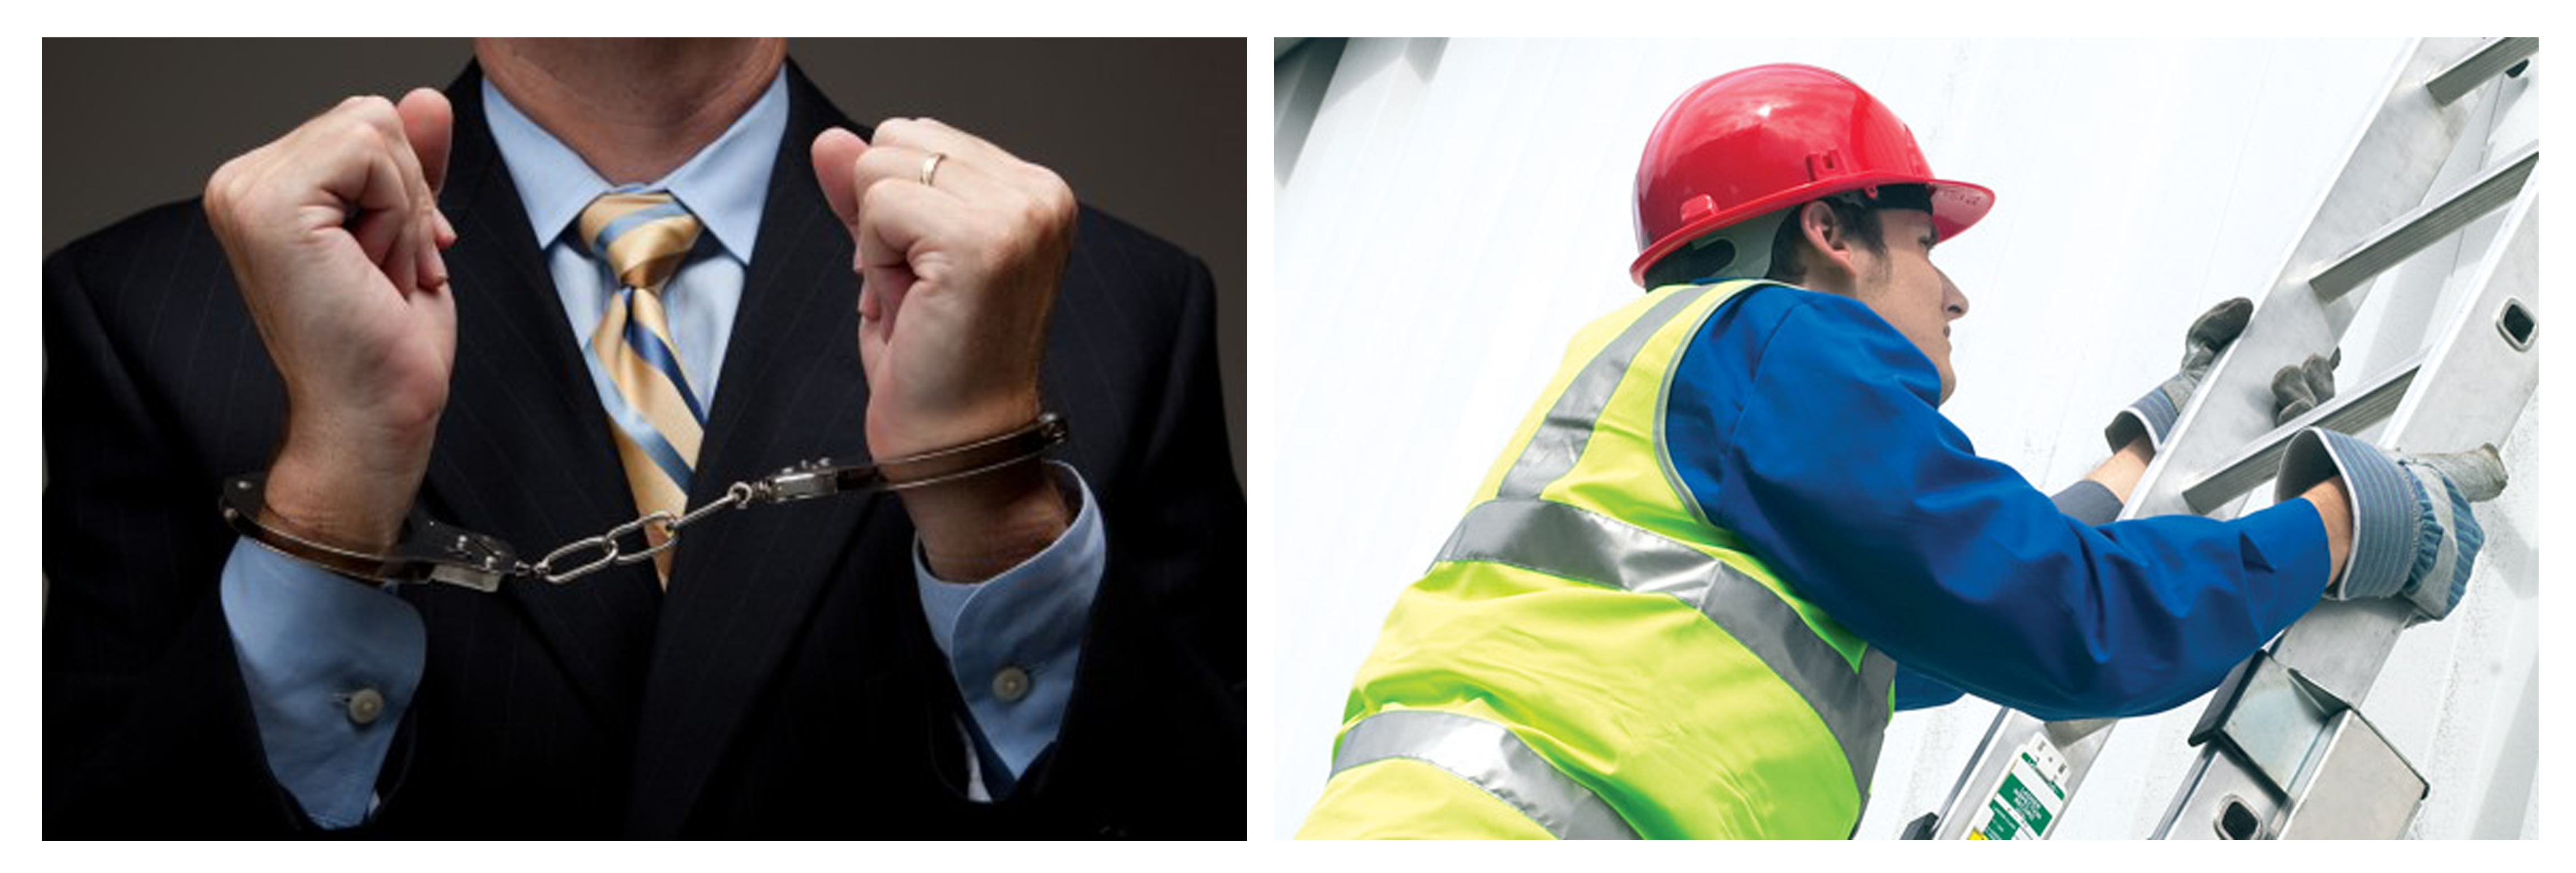 The New Health & Safety and Corporate Manslaughter Guidelines